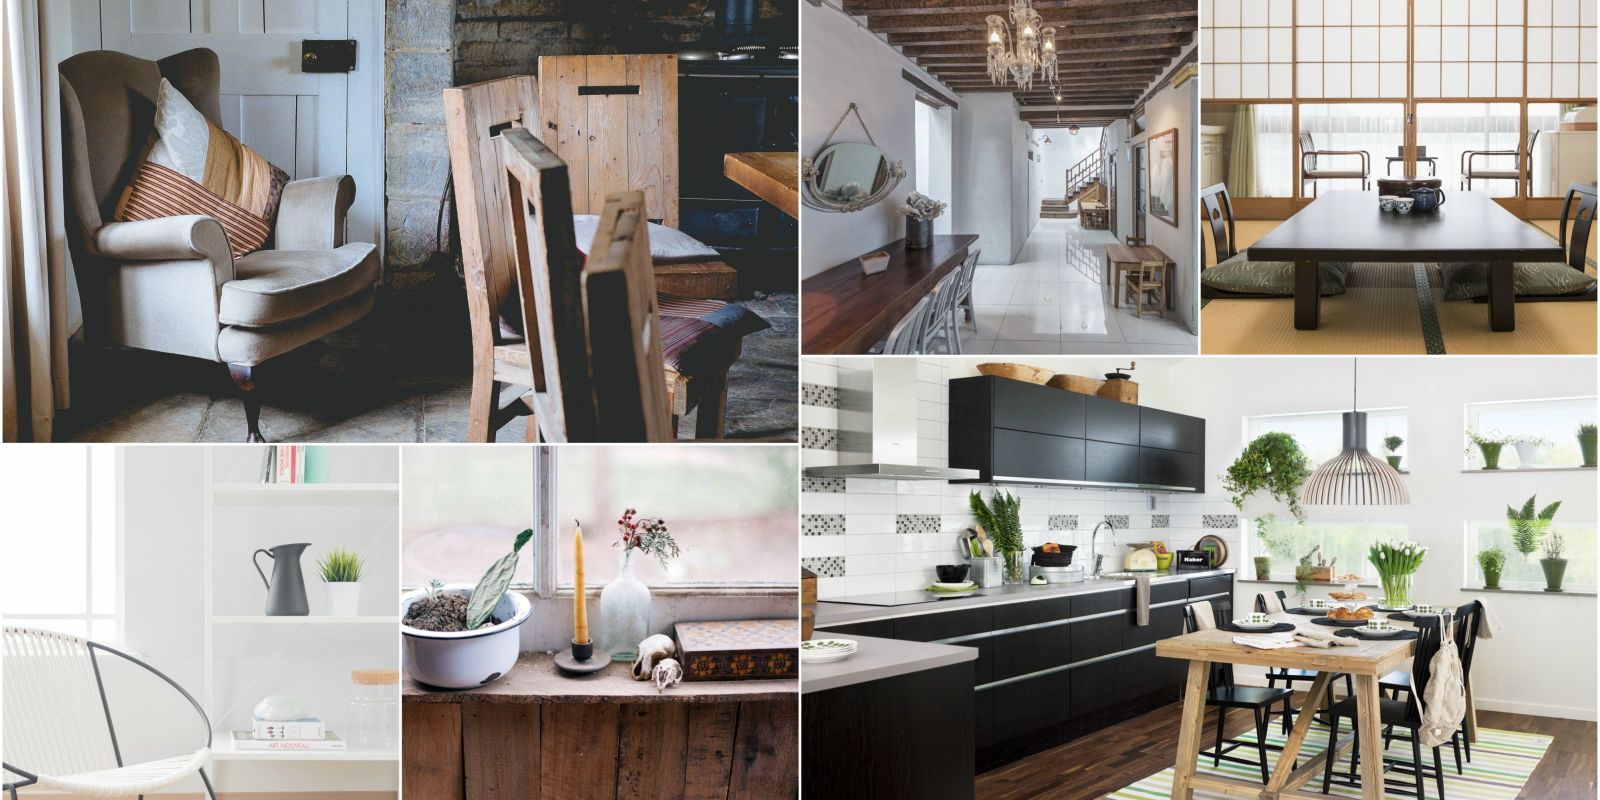 3 interior design trends from around the world that could for Research interior decoration and design influences